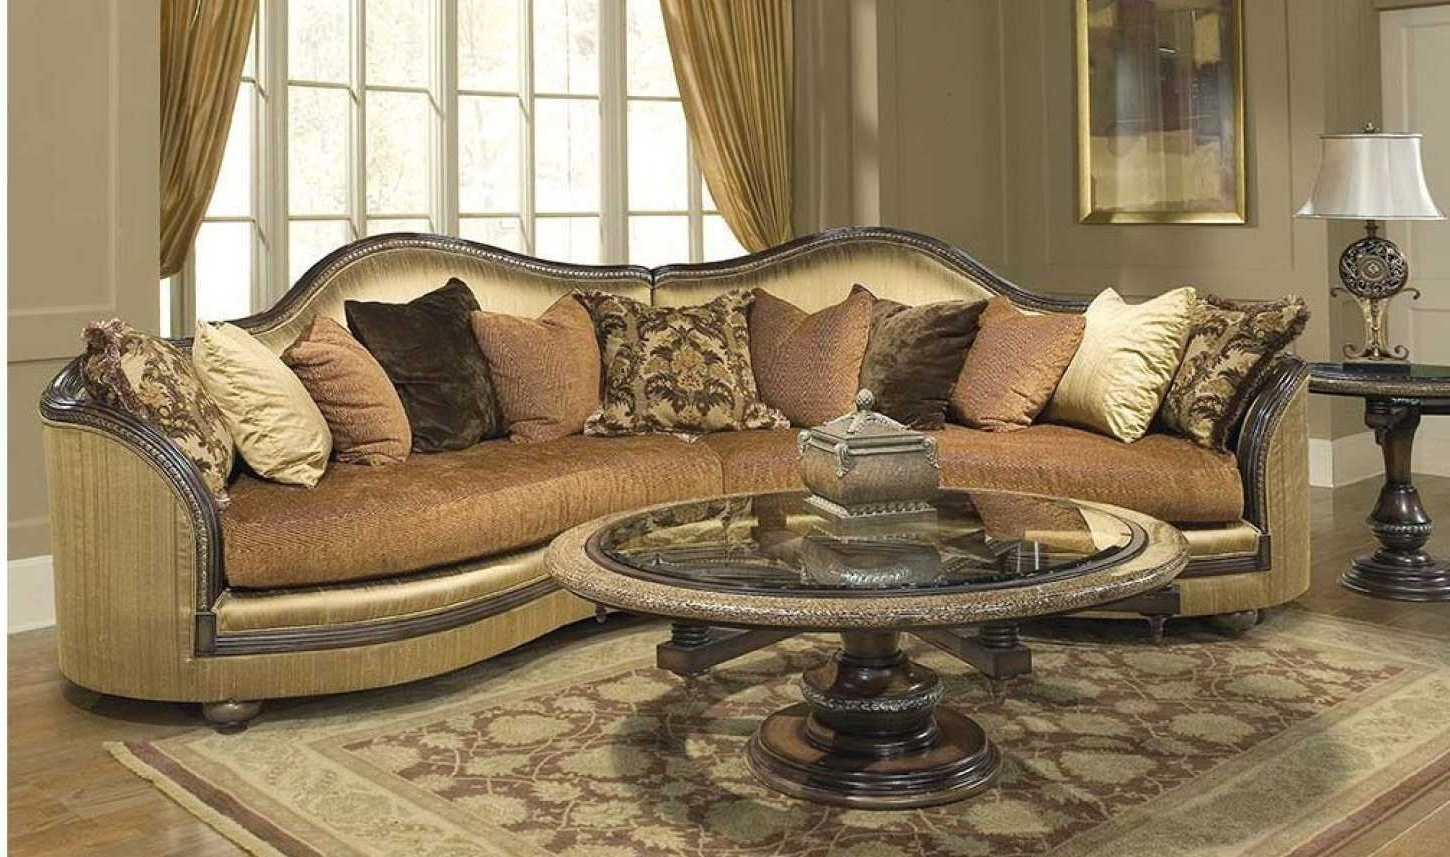 view photos of sectional sofas at rooms